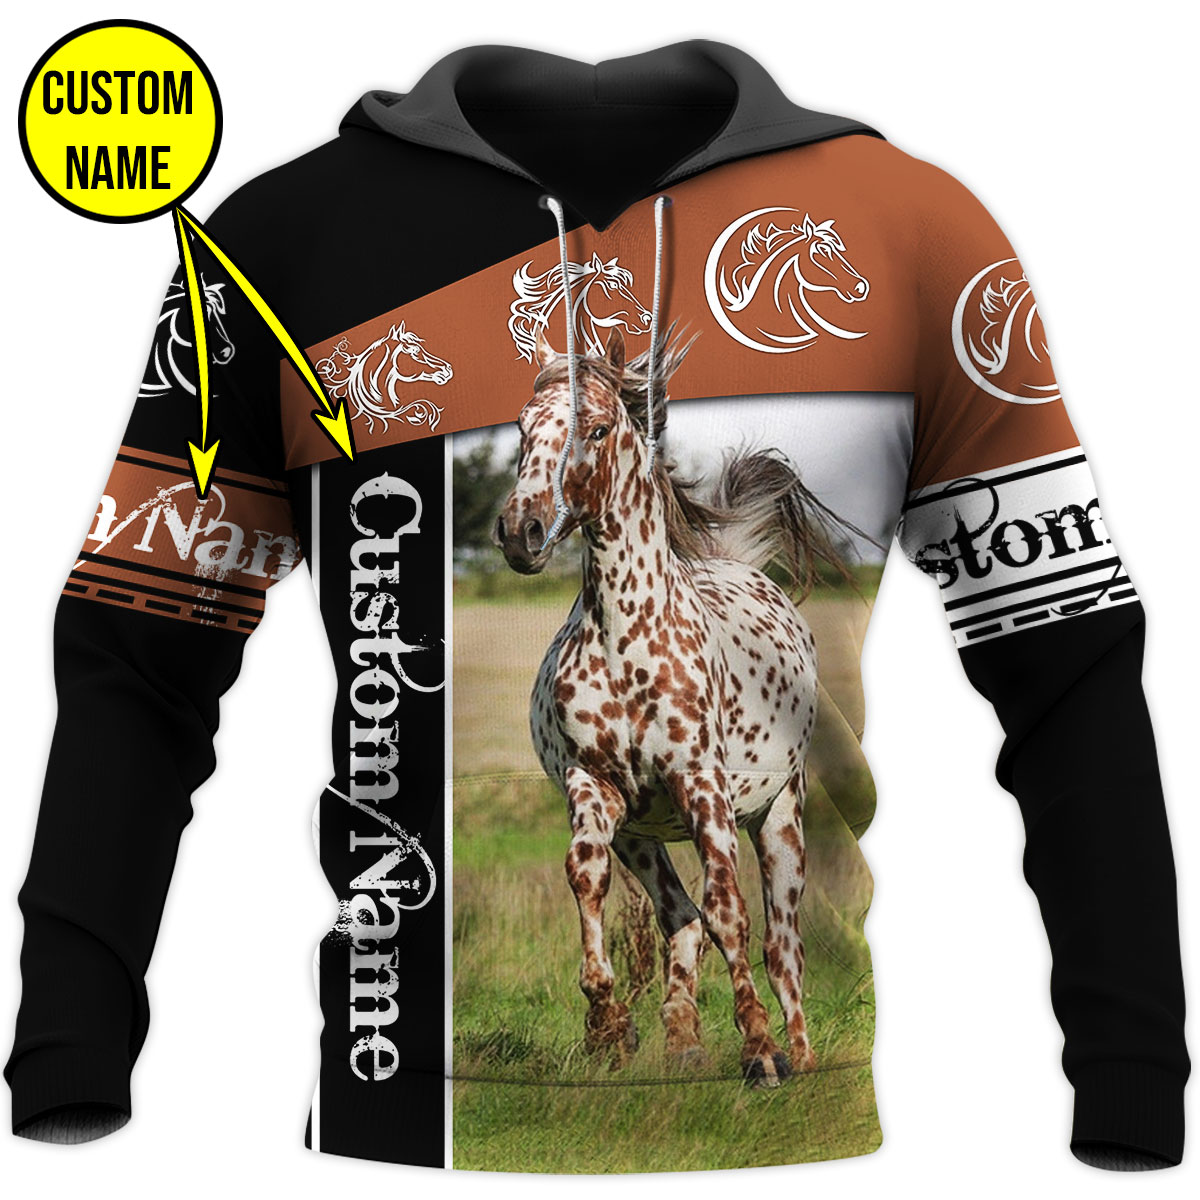 Personalized Your Name Love Horse 3D All Over Printed Shirts